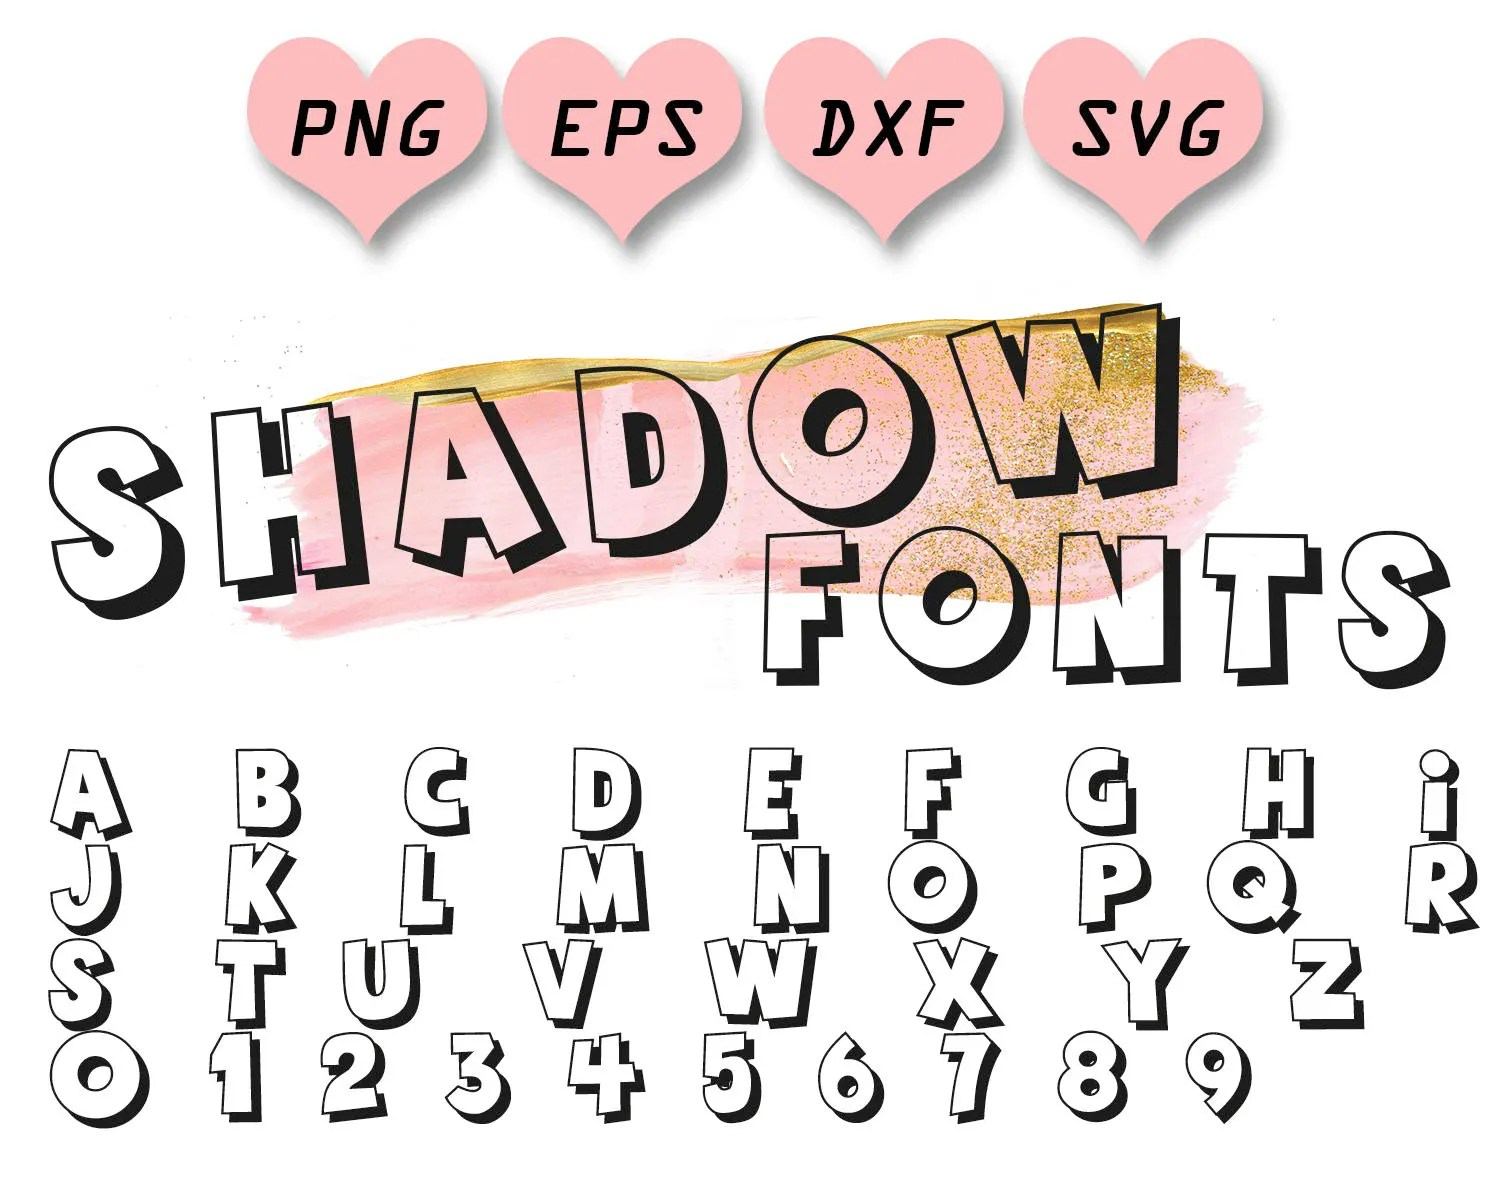 Shadow fonts svg block letters svg block fonts svg cartoon Etsy